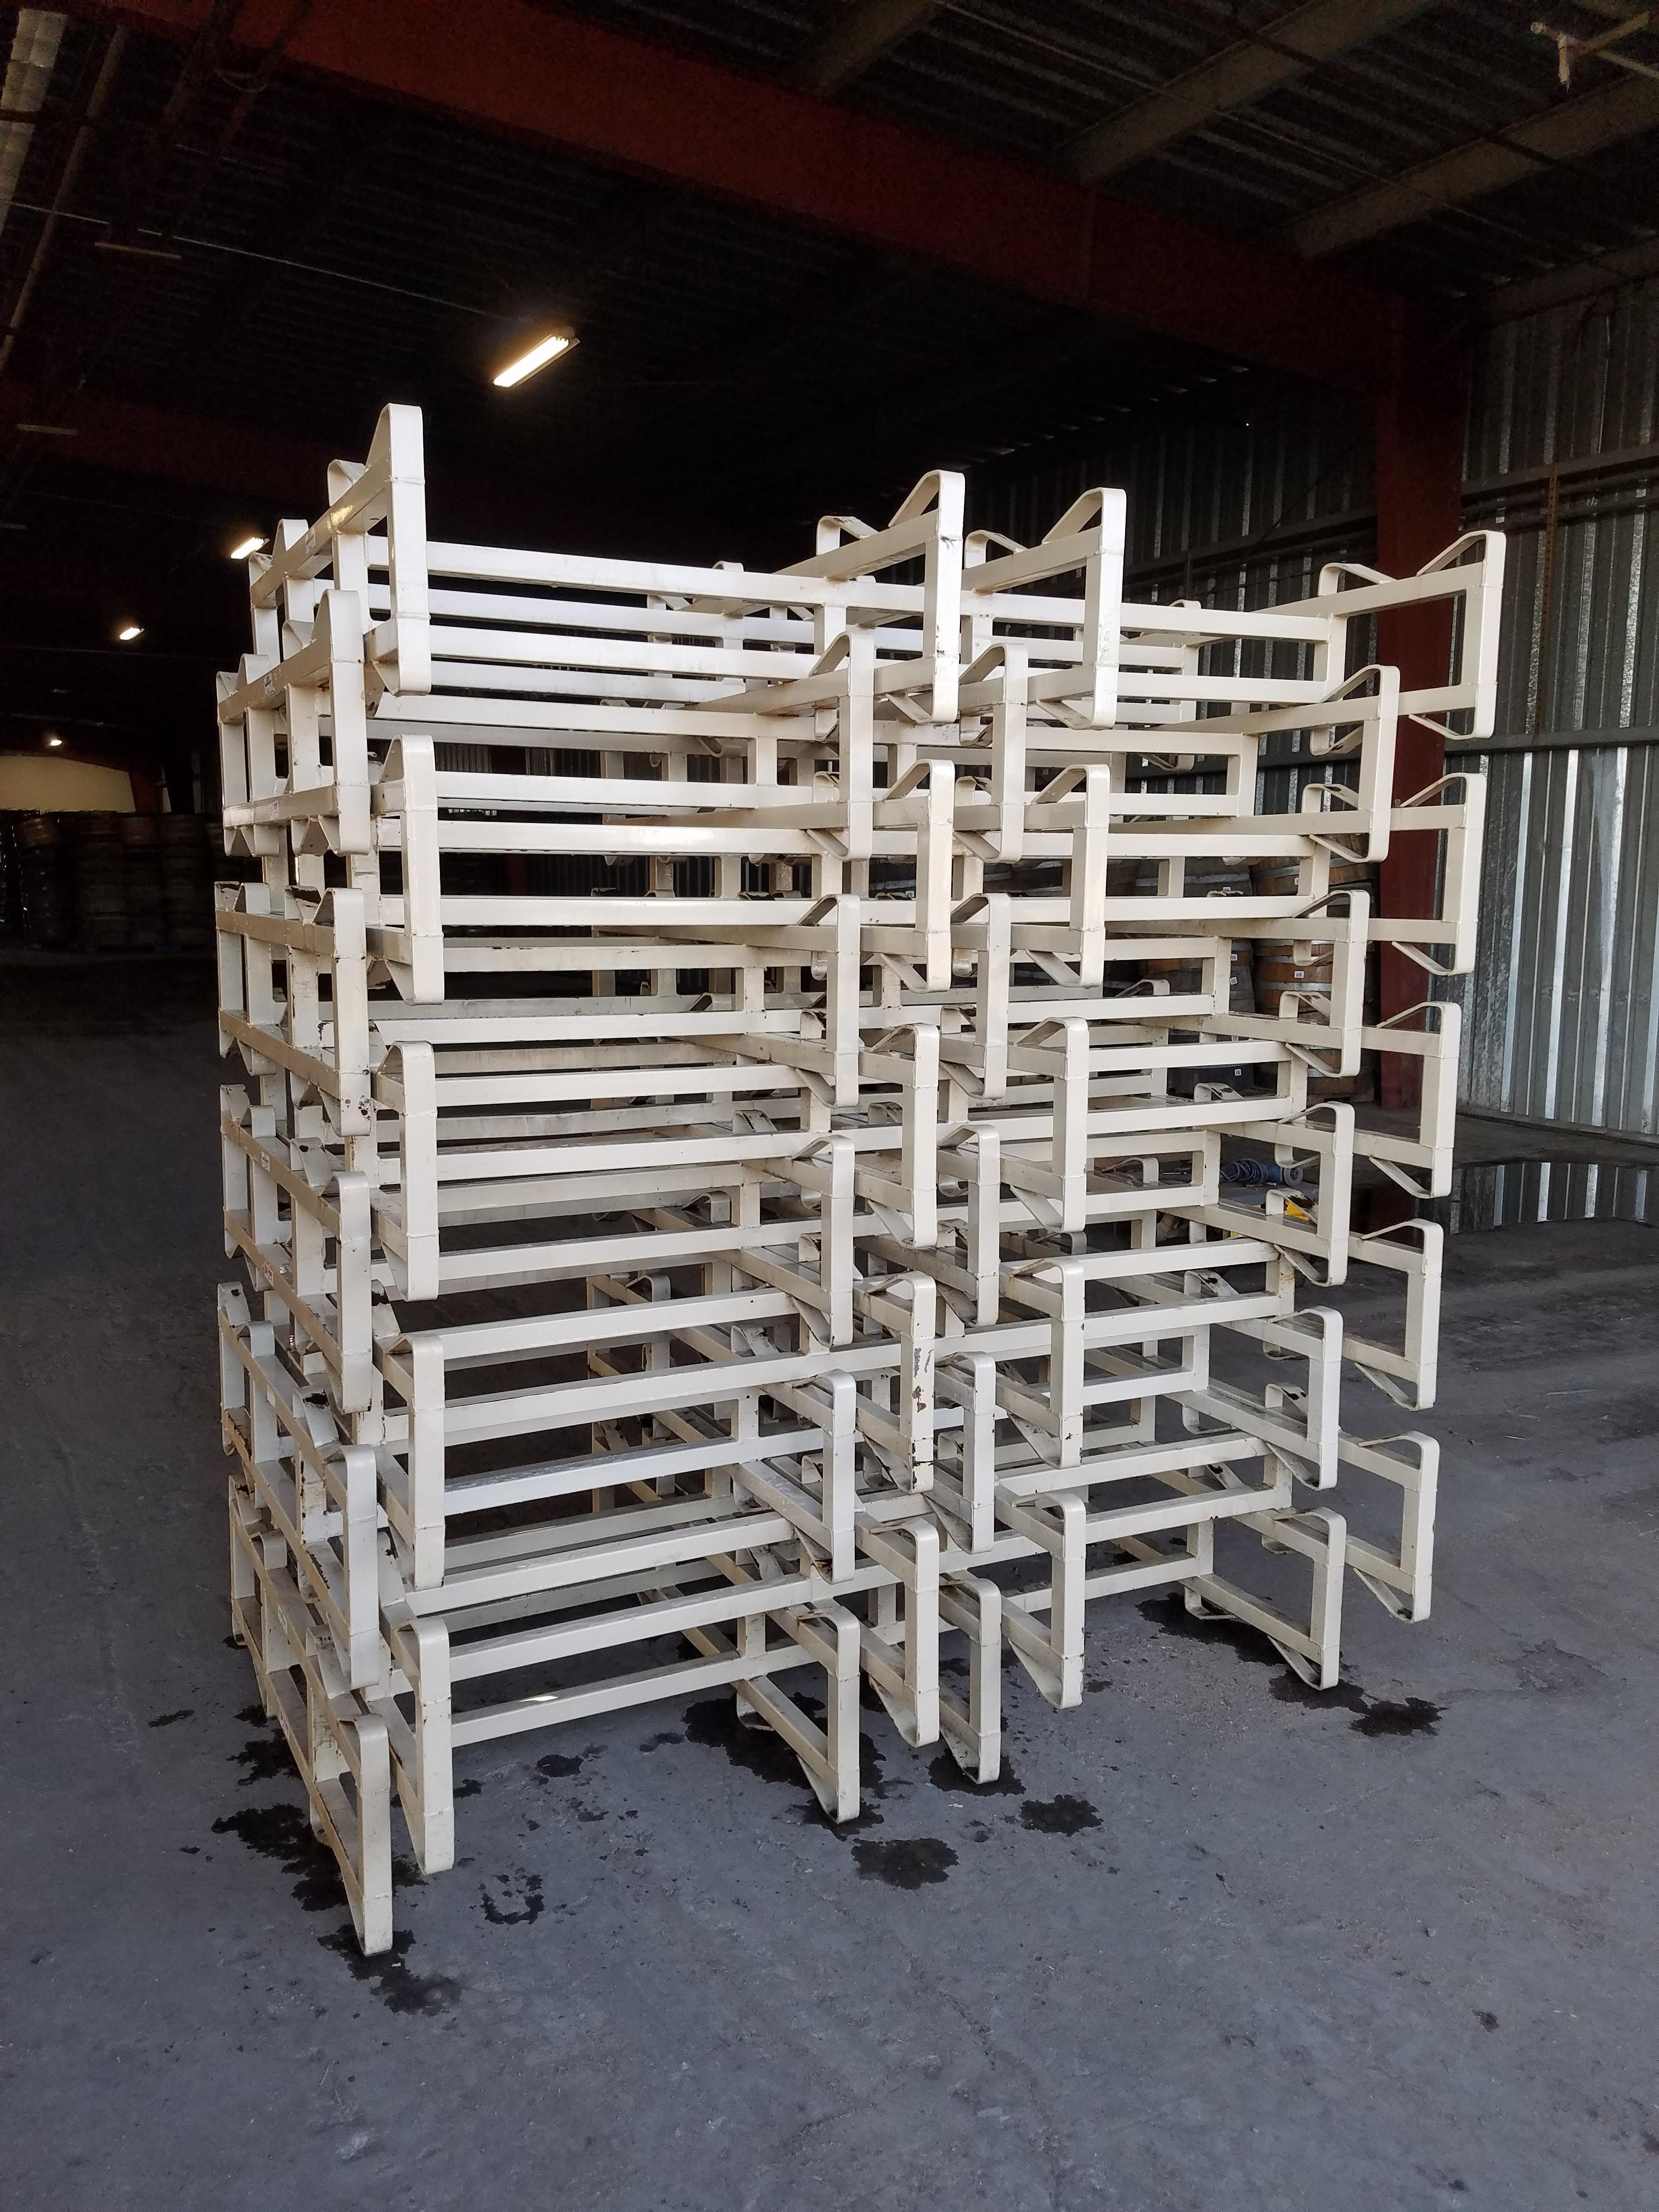 Grade A - 4 Barrel Racks - sold by Country Connection